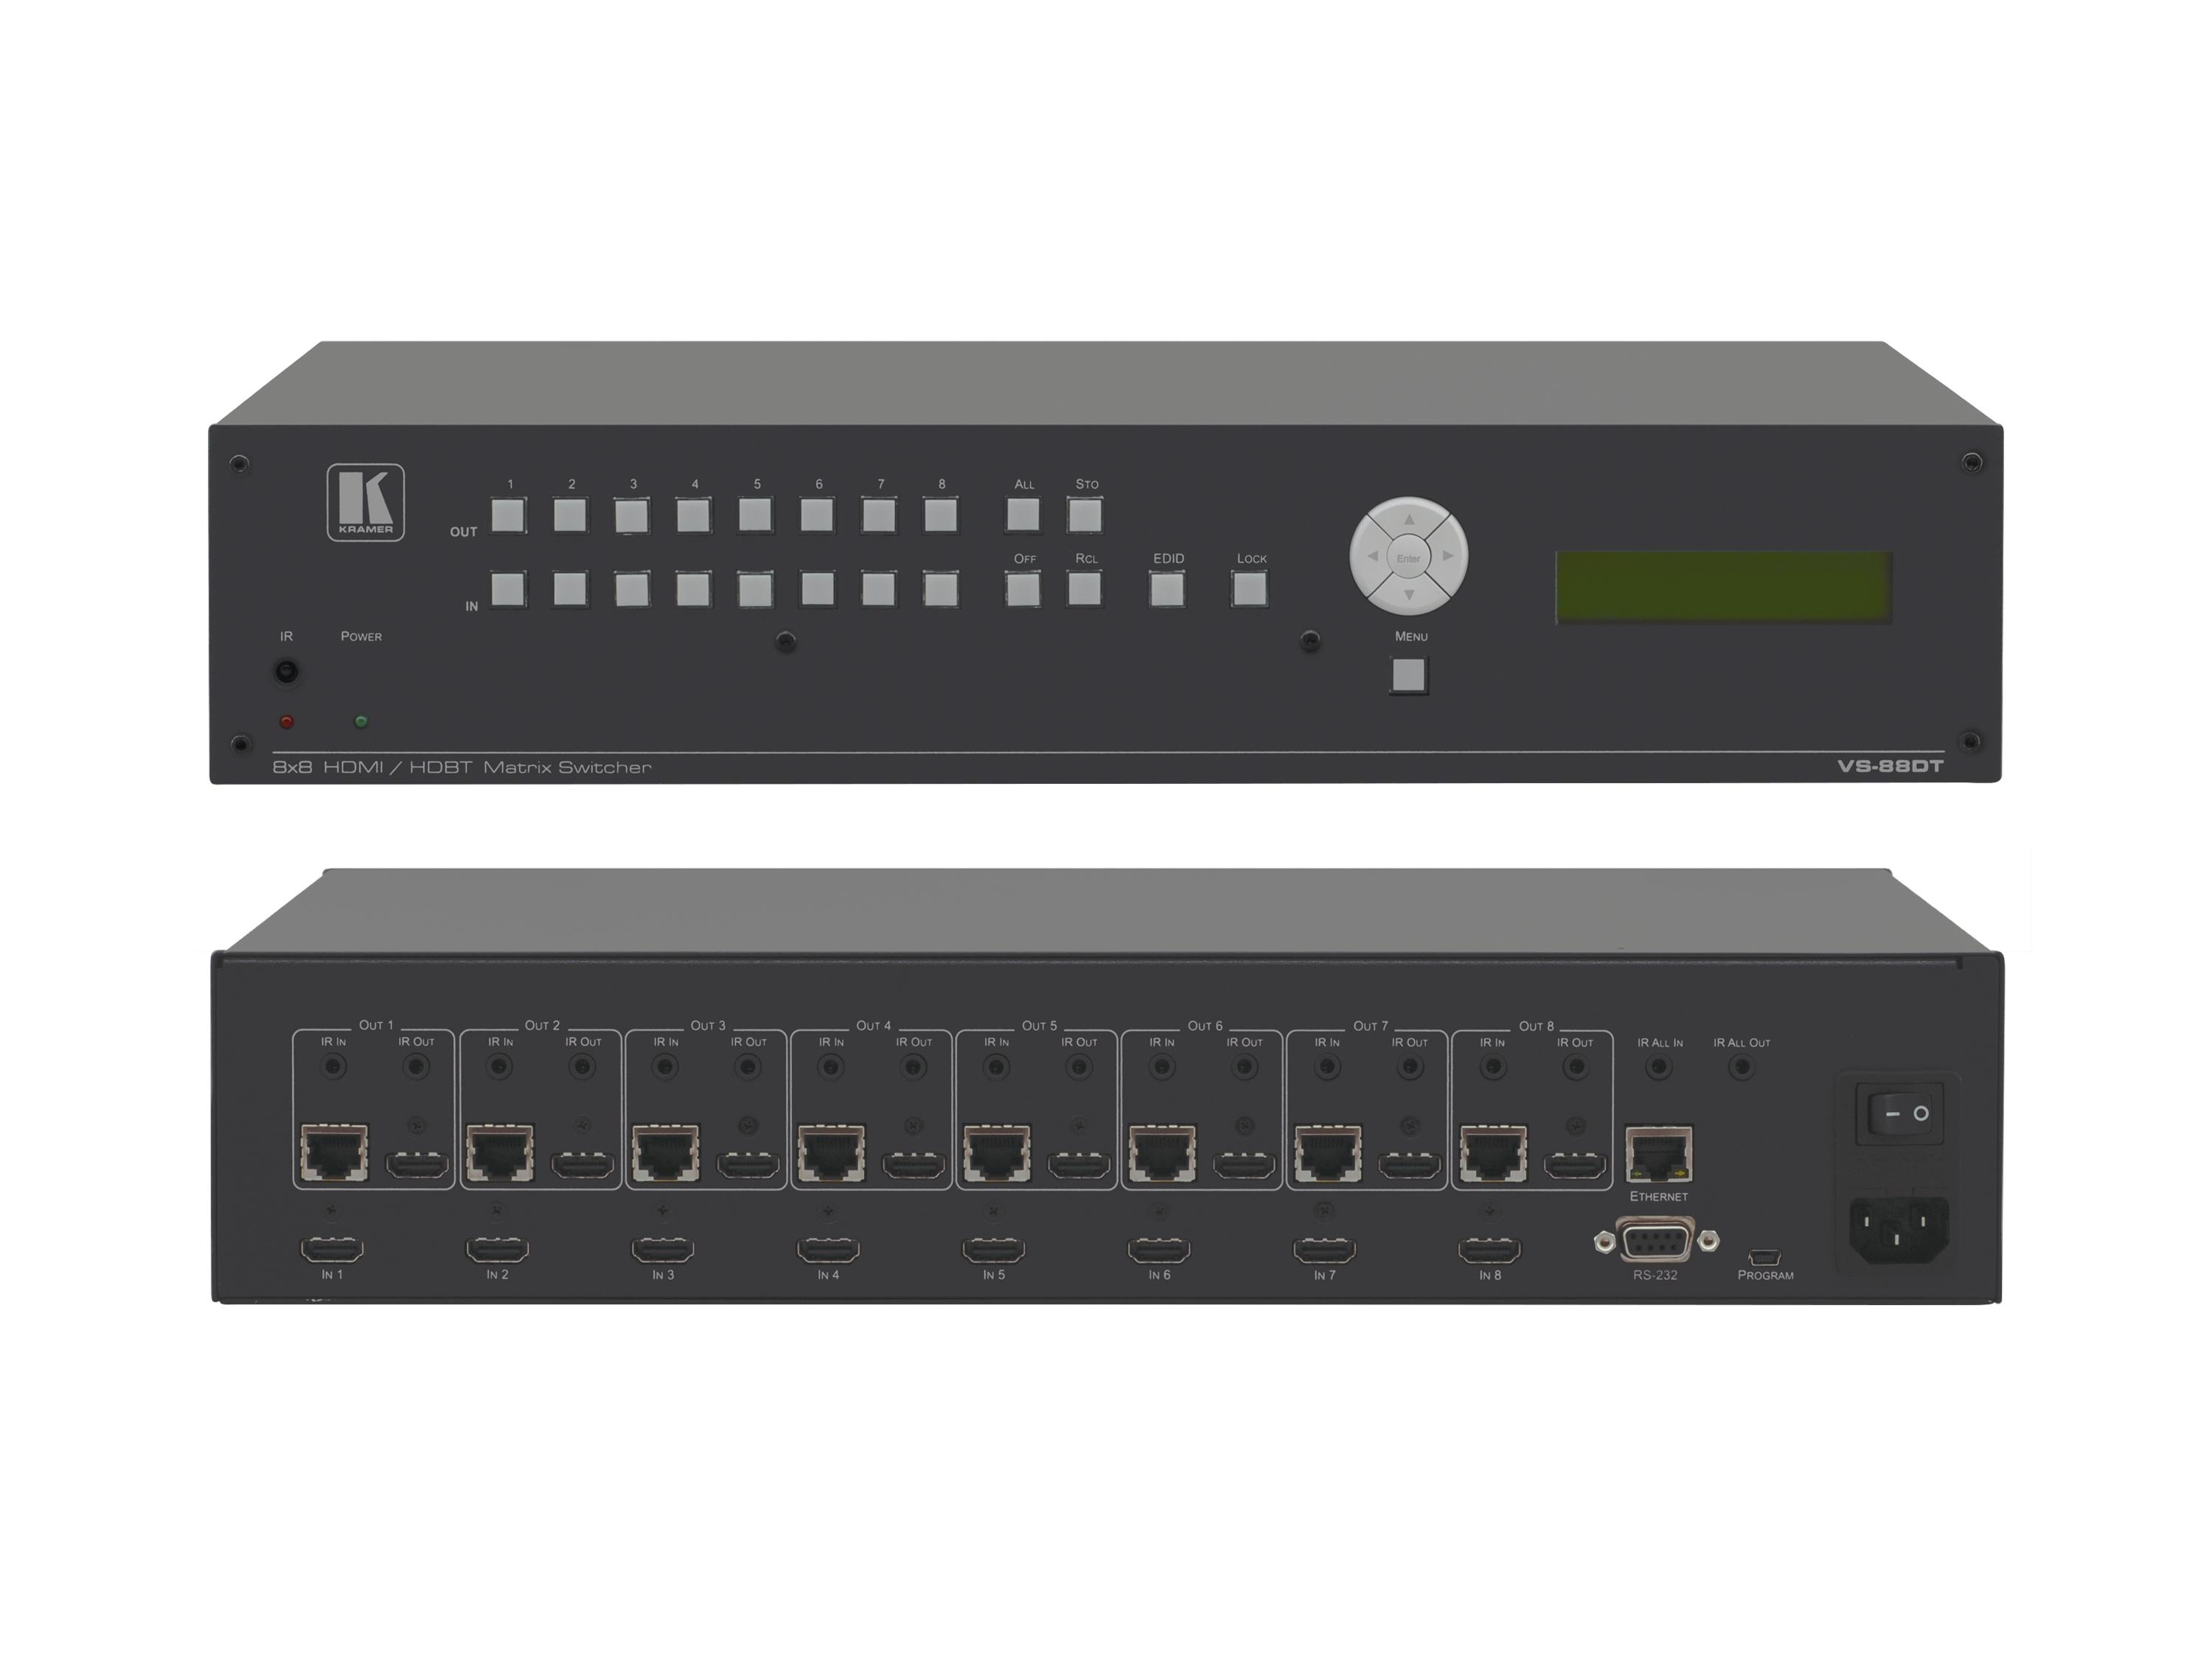 VS-88DT 8x8 HDMI to HDMI or HDBaseT Matrix Switcher by Kramer